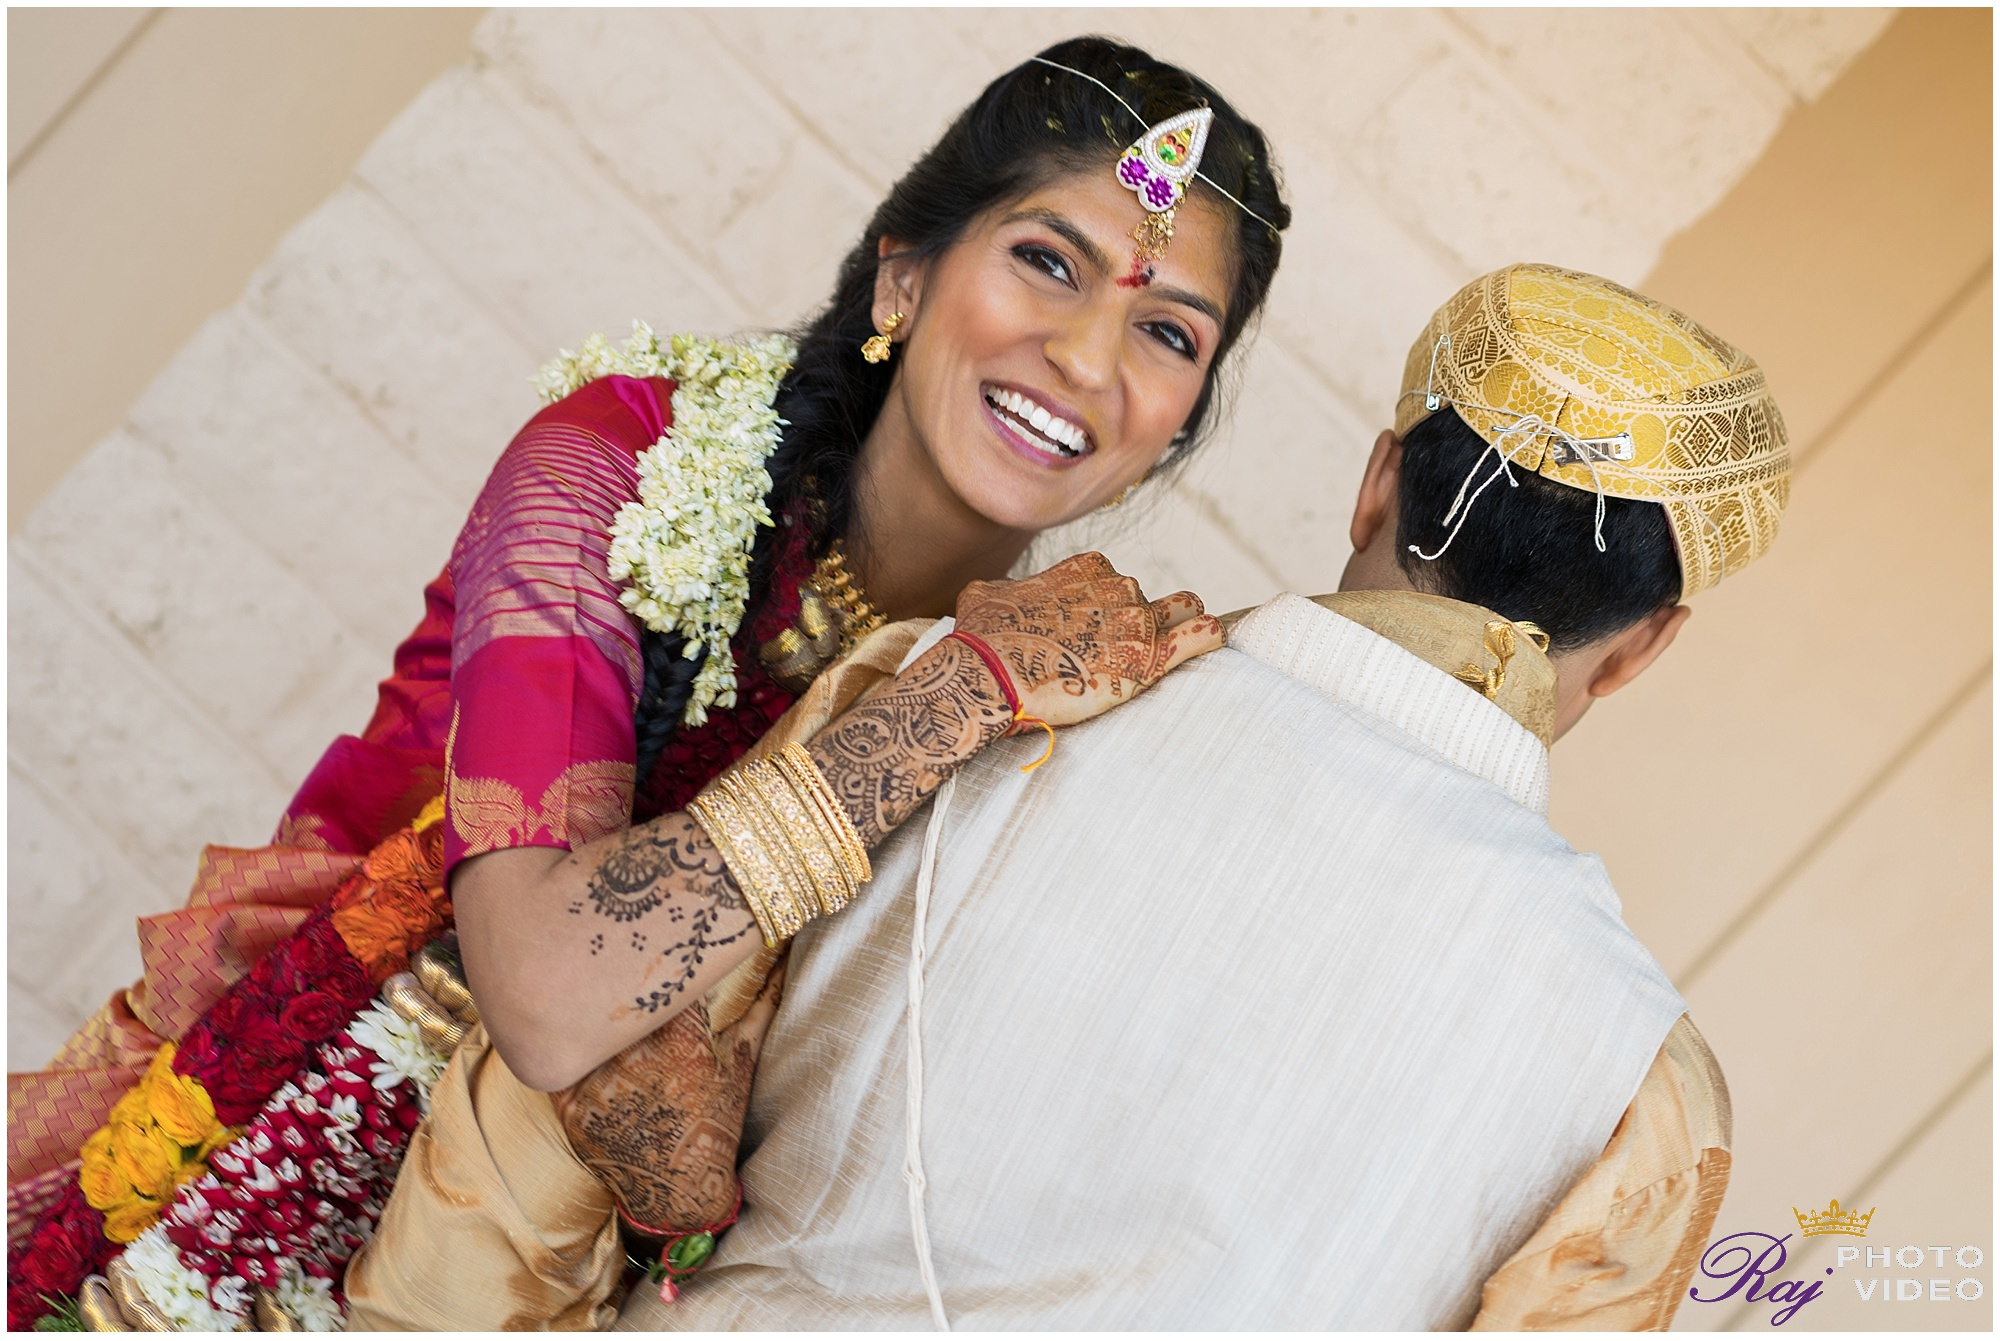 Sri_Venkata_Krishna_Kshetra_Temple_Tempe_Arizona_Indian_Wedding_Sapna_Shyam-19.jpg